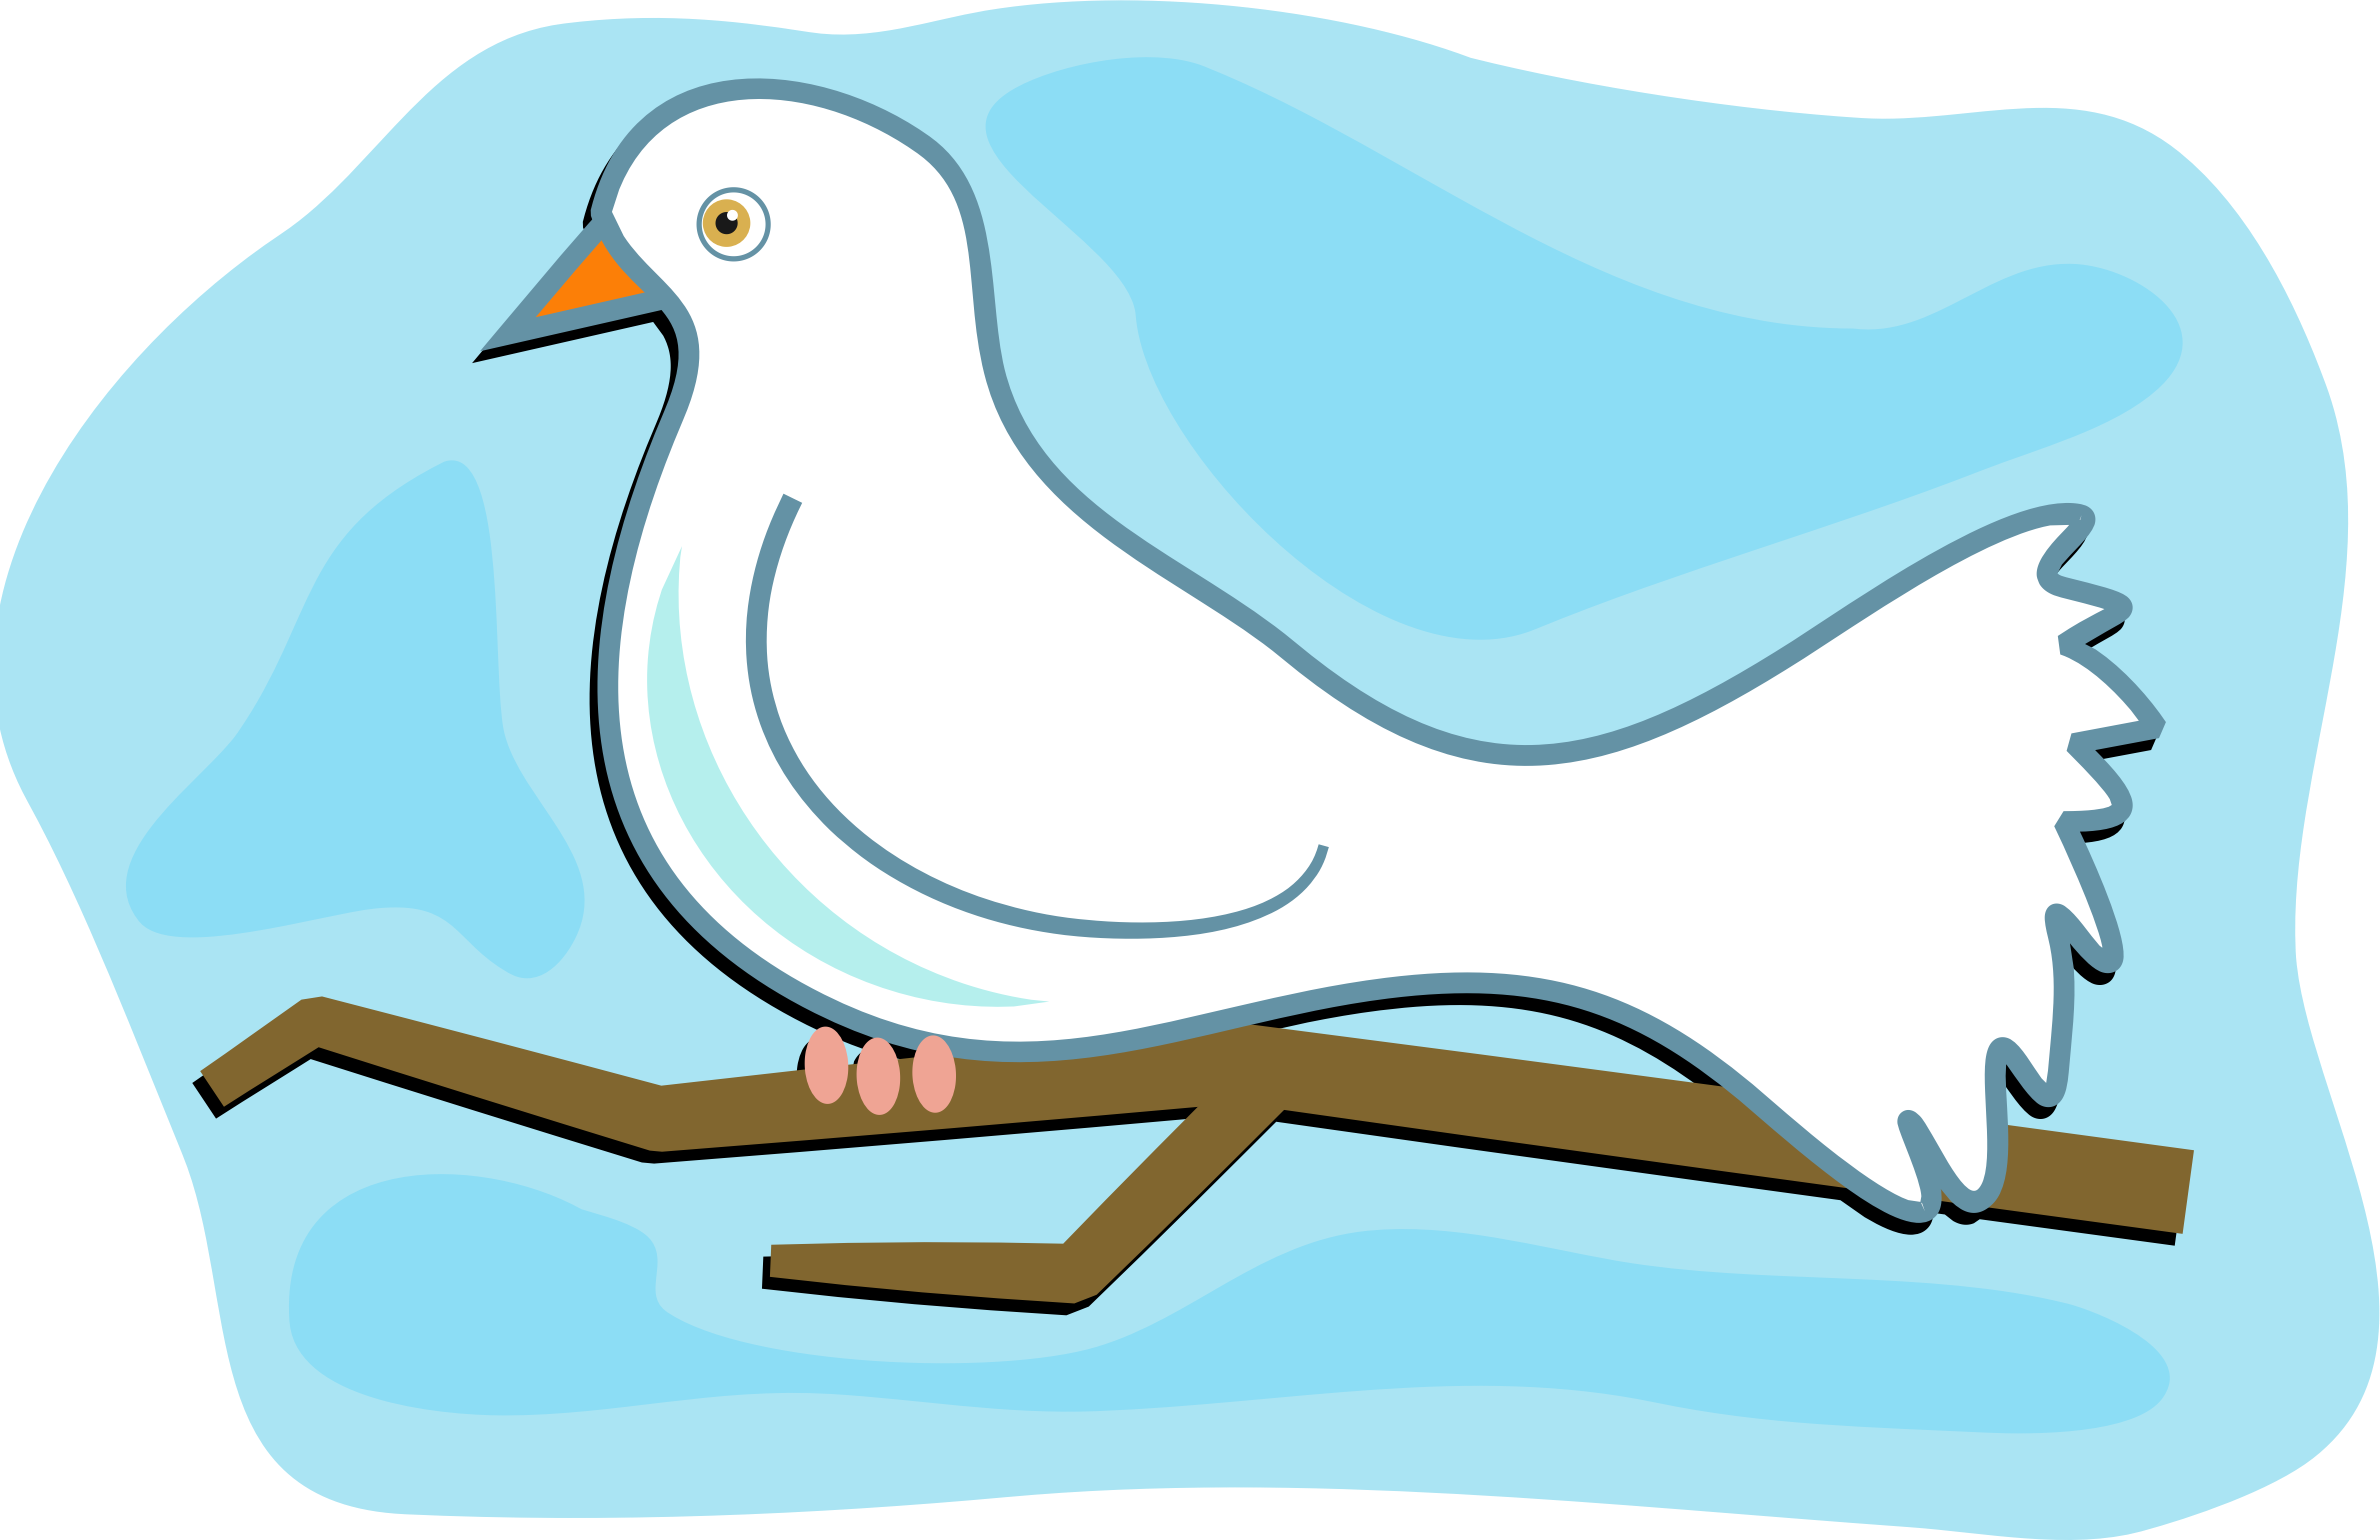 Doves clipart animated, Doves animated Transparent FREE for download.